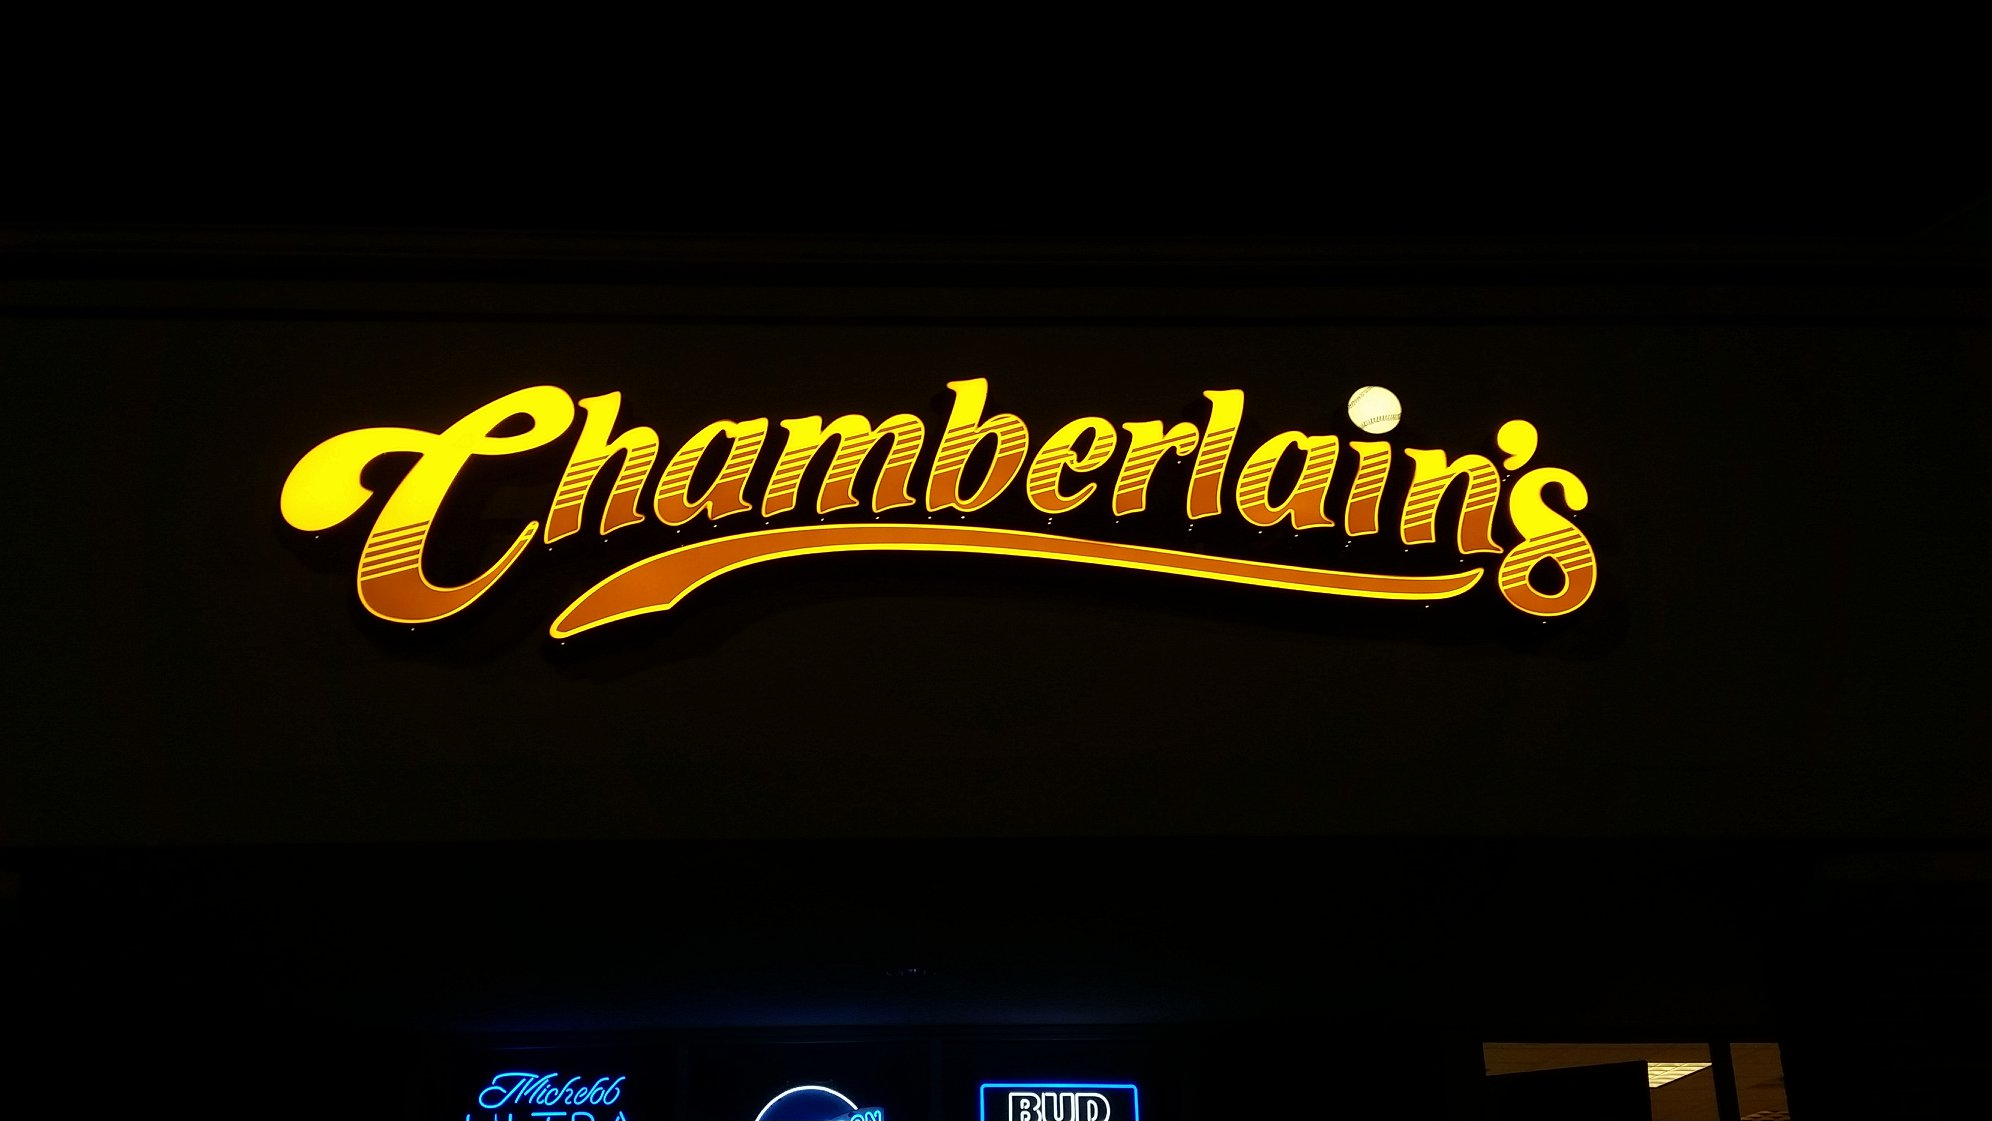 CHAMBERLAINS NIGHT